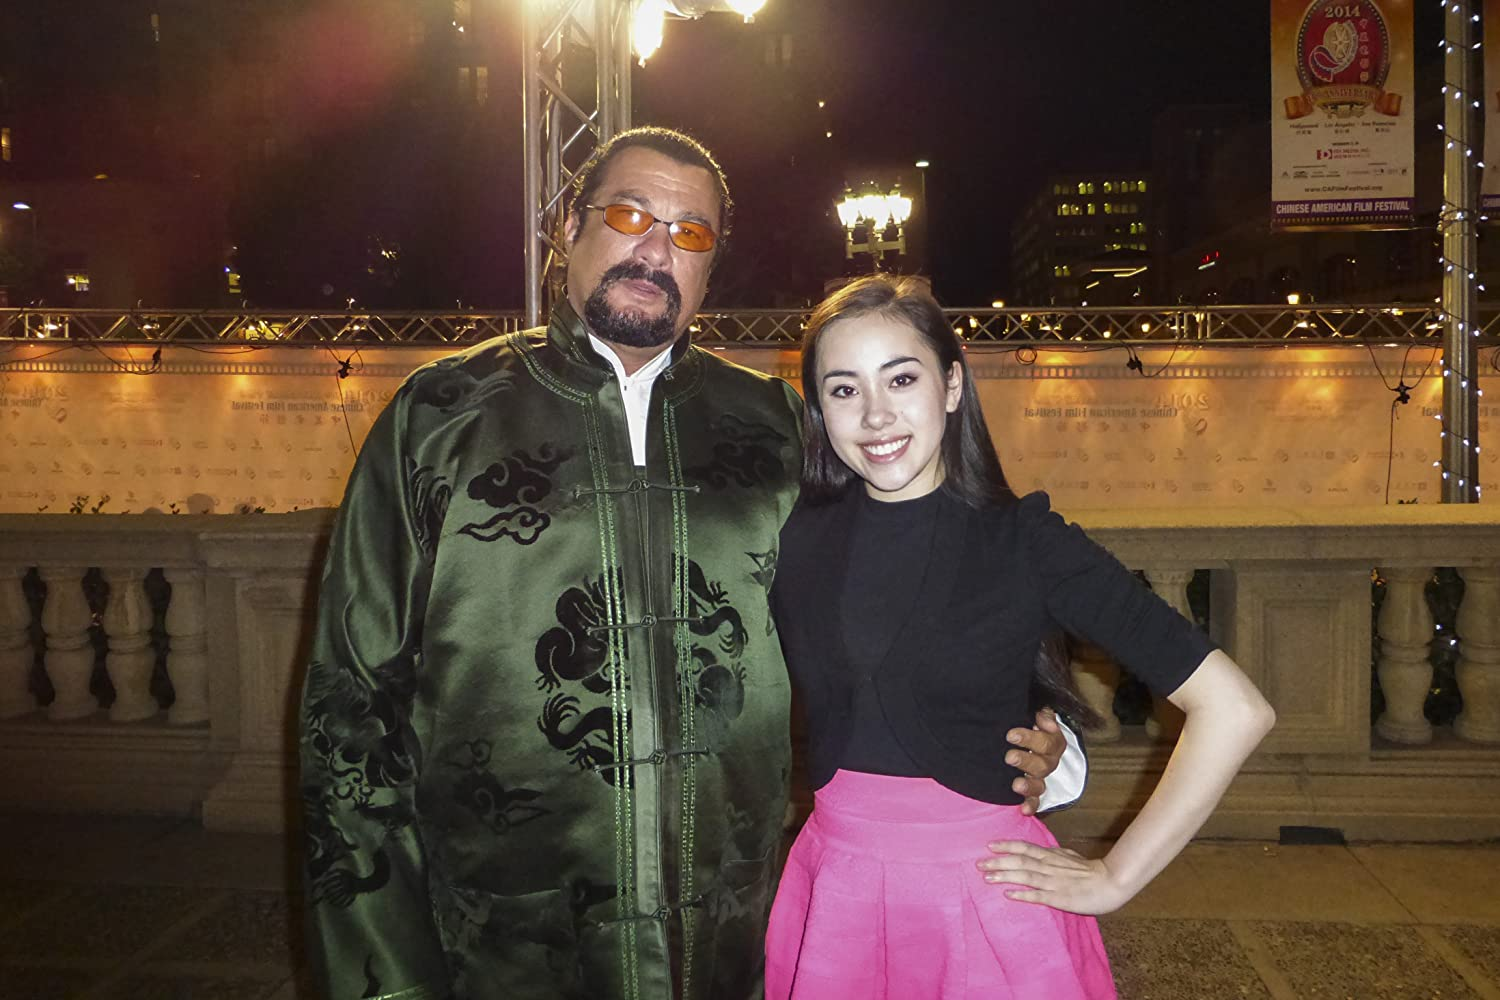 Steven Seagal and Artemis on the red carpet at the Chinese American Film Festival, 2014.